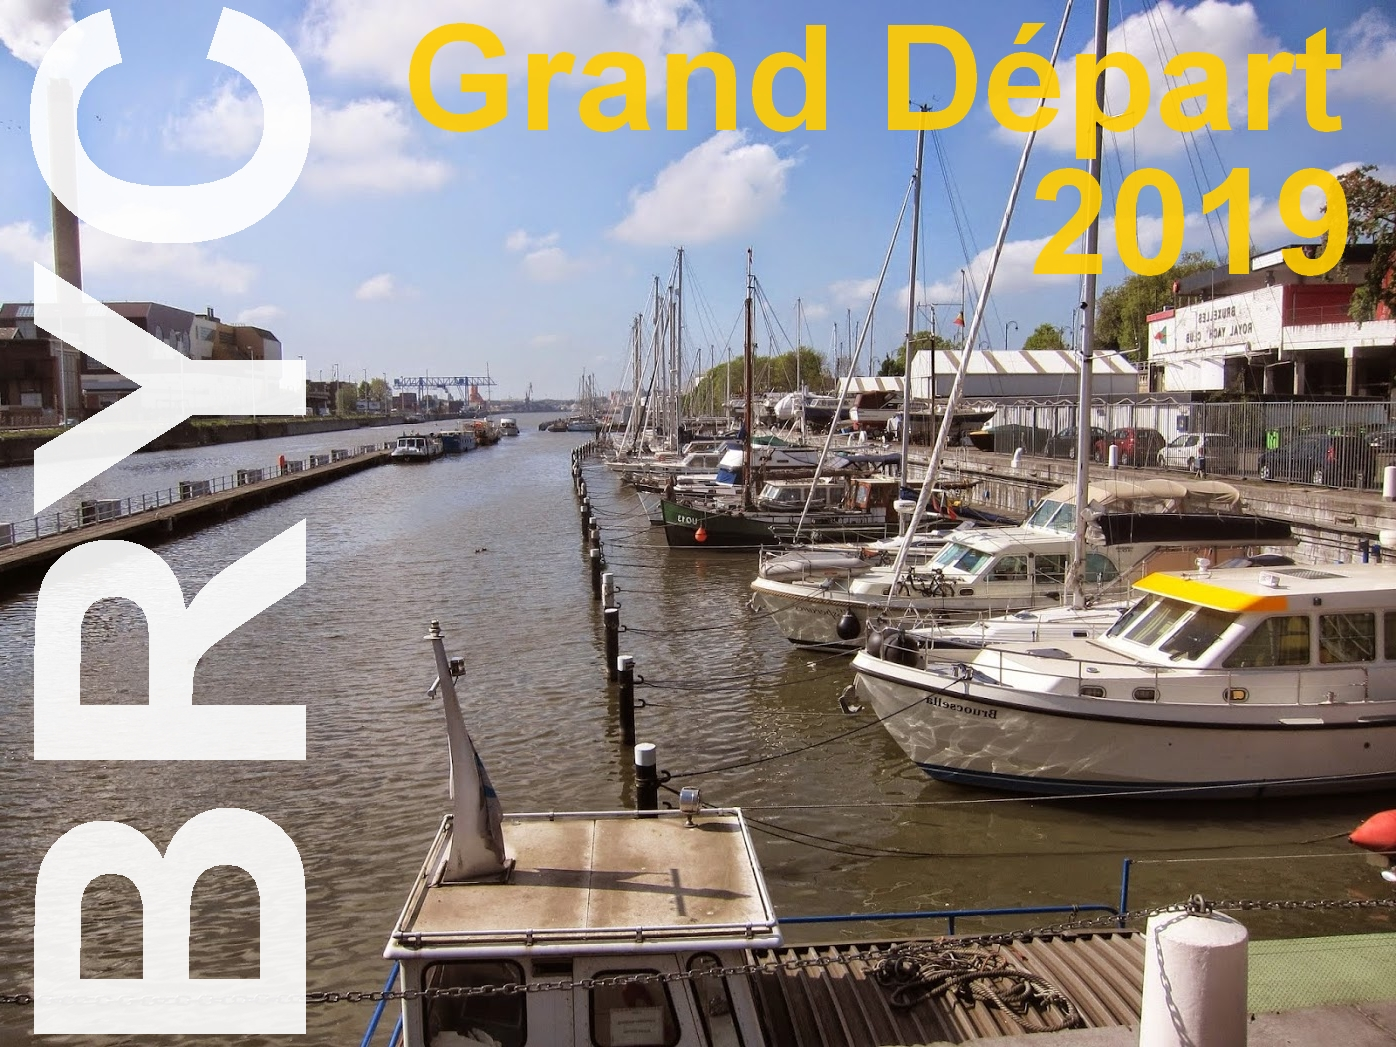 BRYC-Grand-Depart-2019 Bruxelles Royal Yacht Club - GRAND DEPART 2019